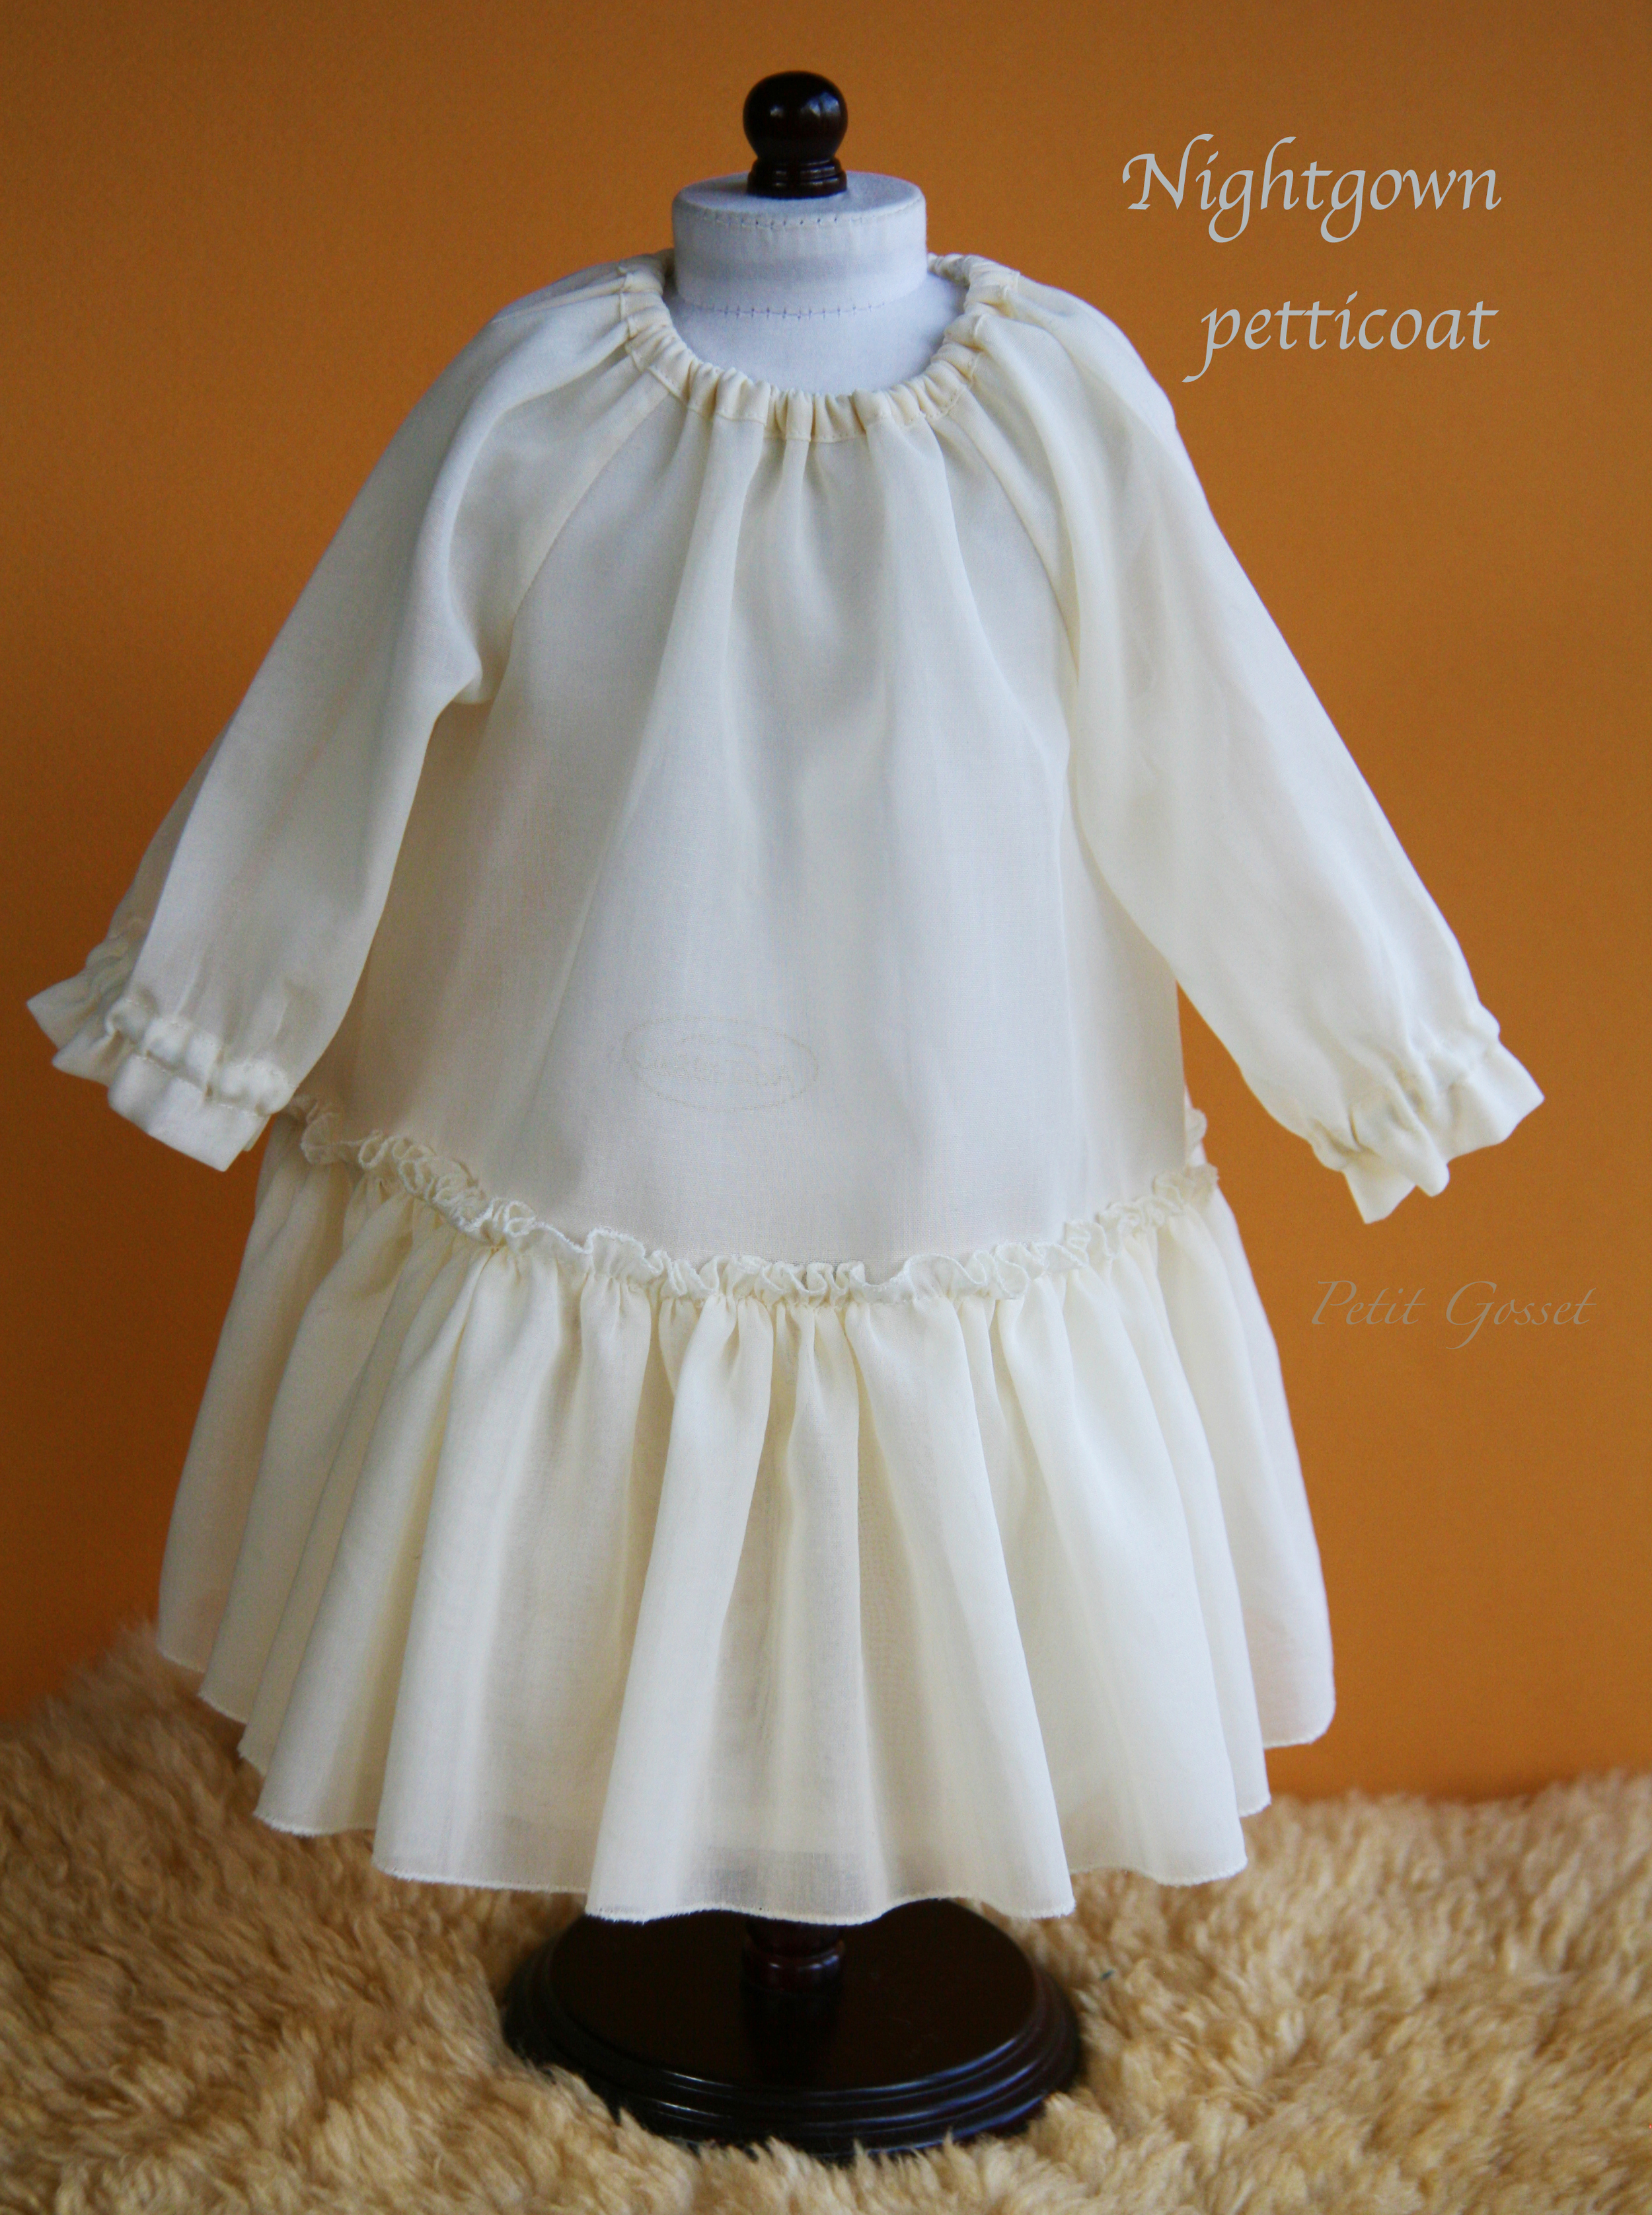 "A nightgown petticoat, crafted with Swiss semi-sheer voile. Will fit 18-20"" doll."